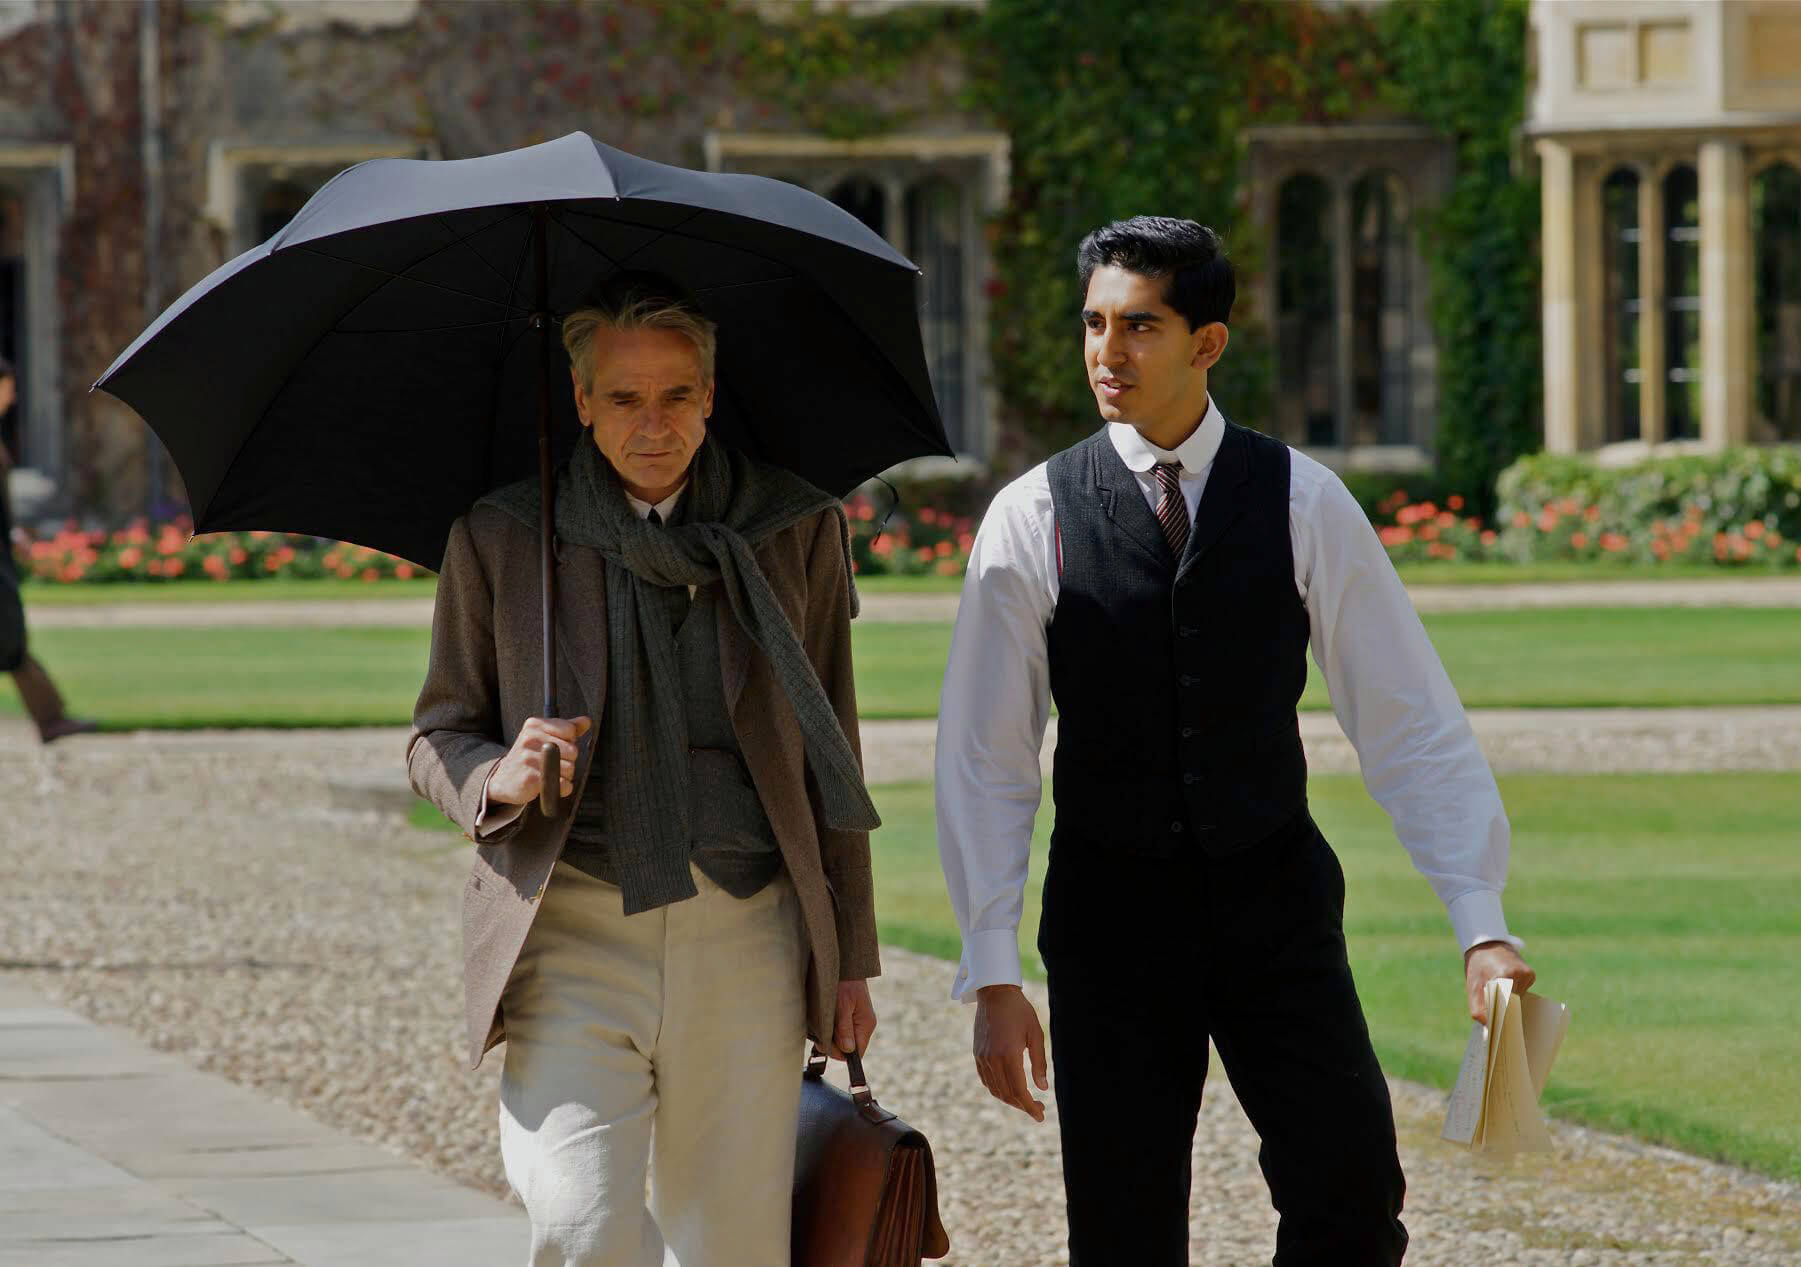 Video still from The Man Who Knew Infinity